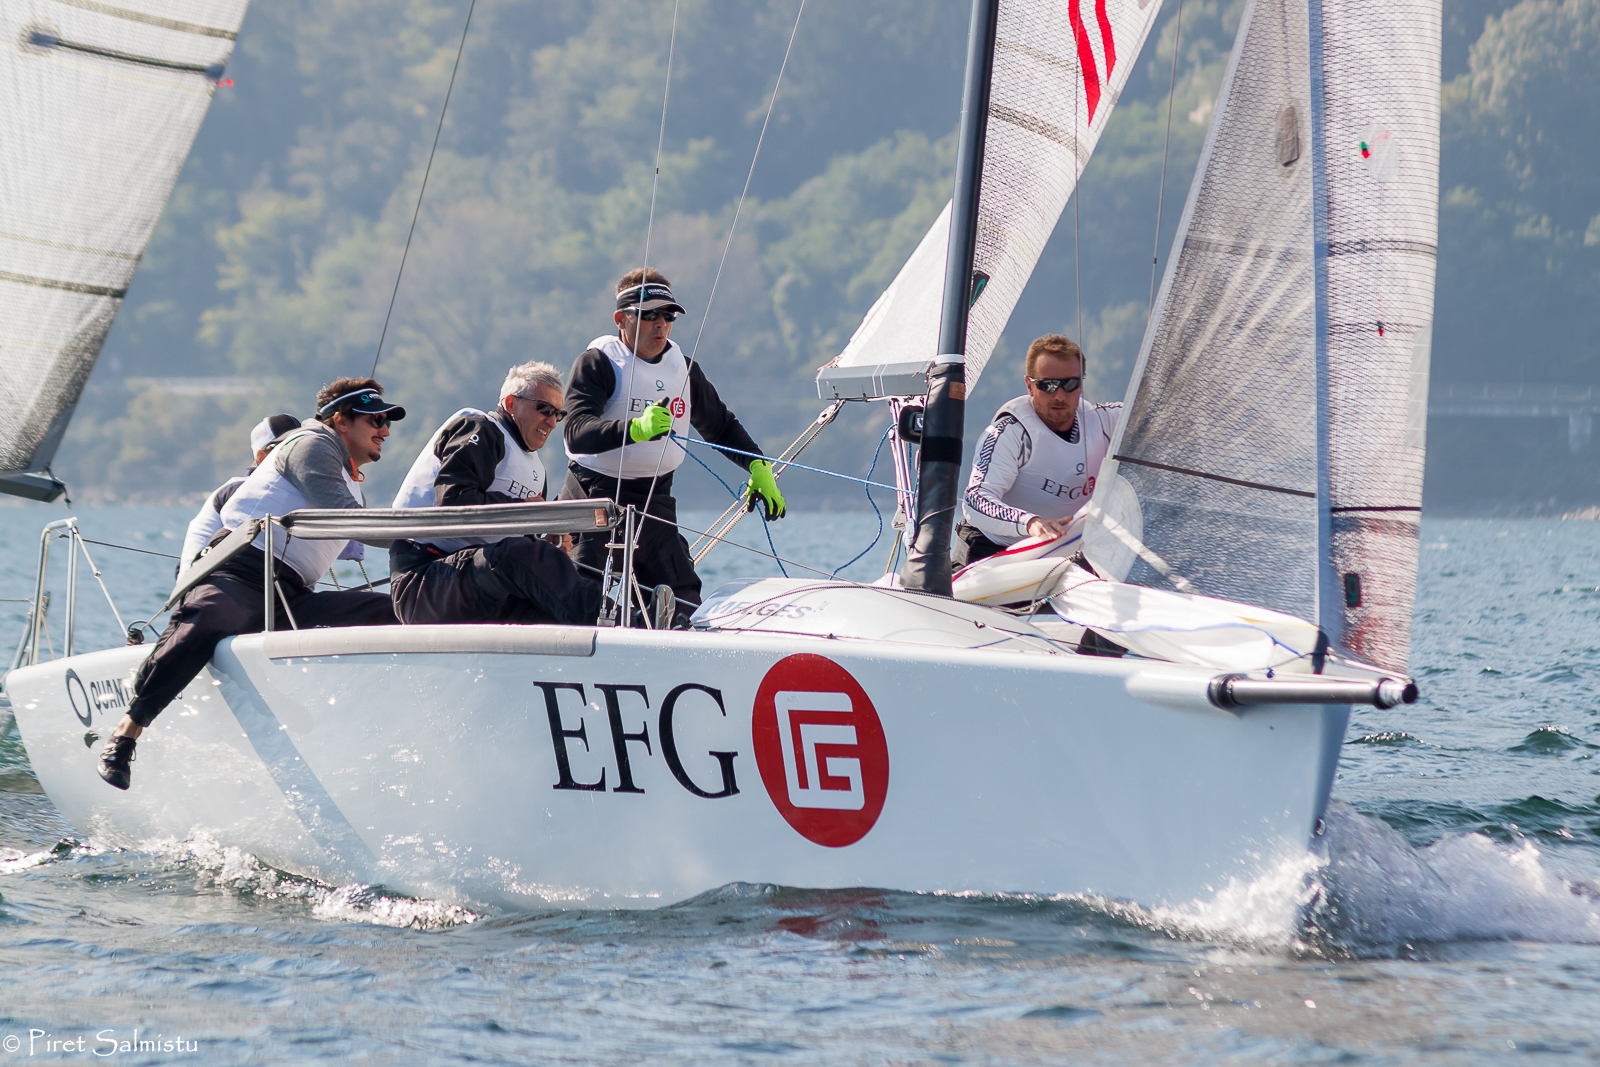 EFG with Carlo Fracassoli in helm